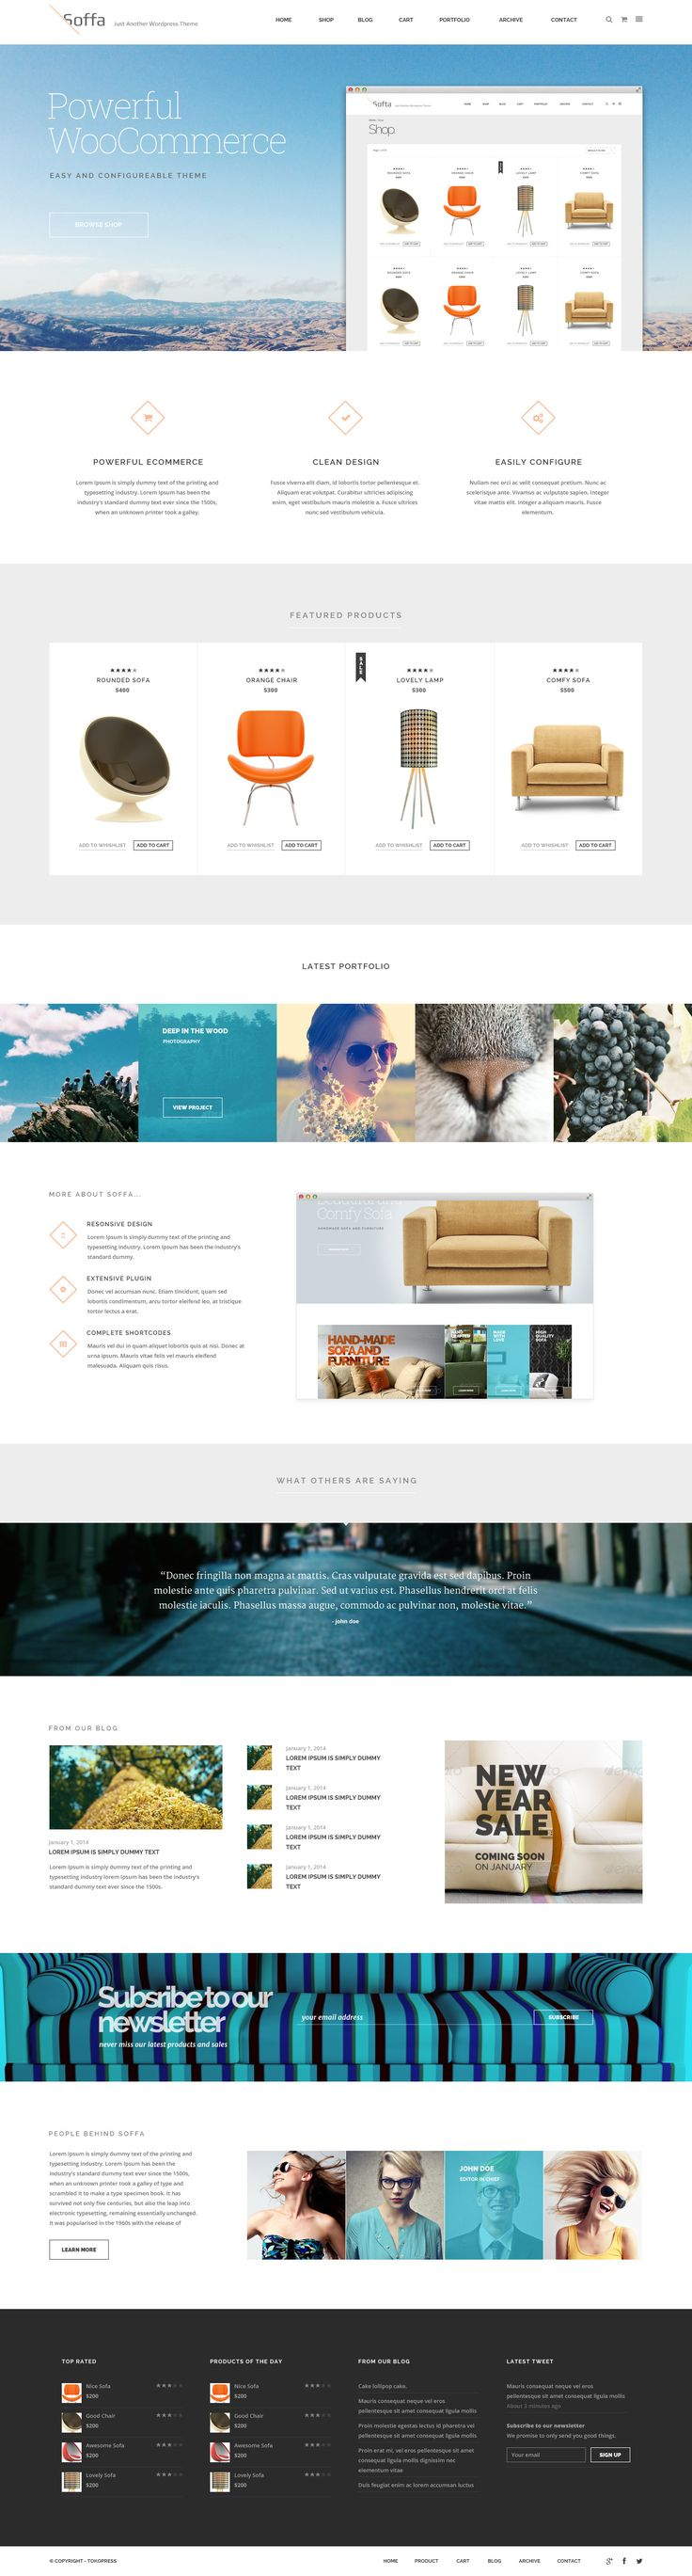 Soffa MultiPurpose PSD Package consistes of 20 PSD files with clean design, ecommerce ready, and organized layer. #webdesign